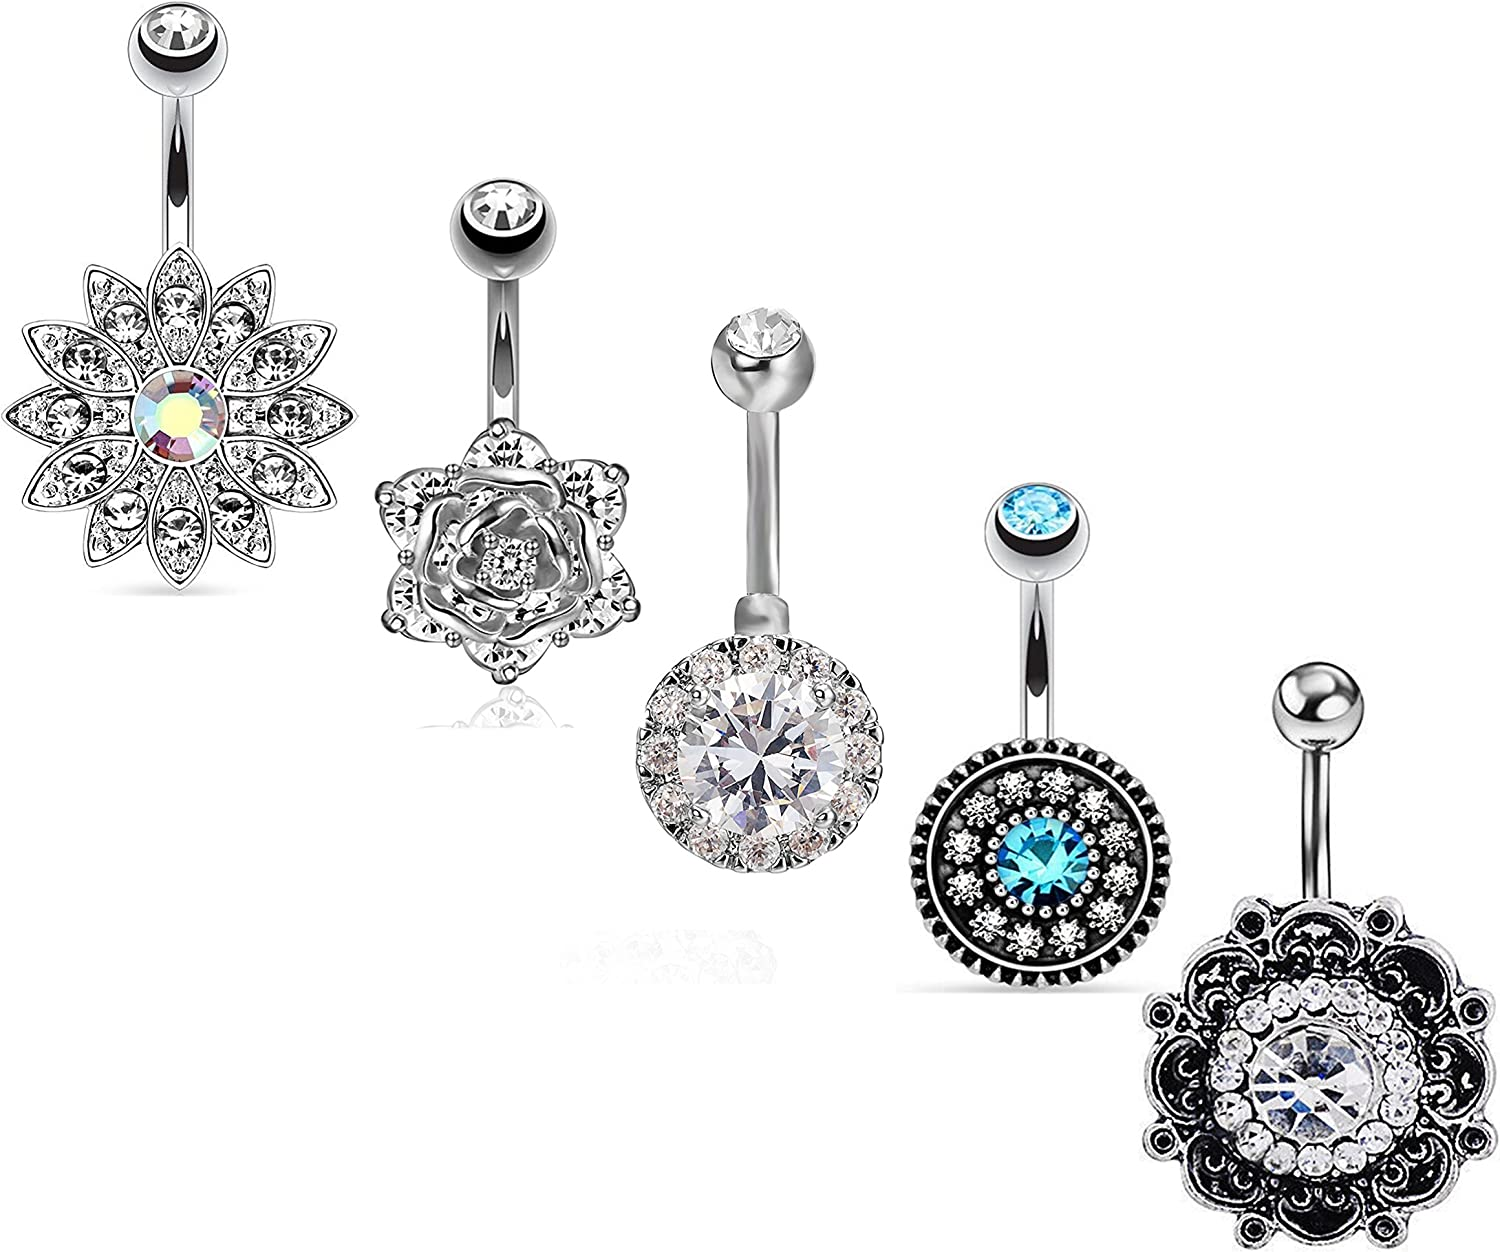 Brilliant cut solitaire OCTAGON cz diamond 925 STERLING SILVER belly ring,navel ring belly button ring